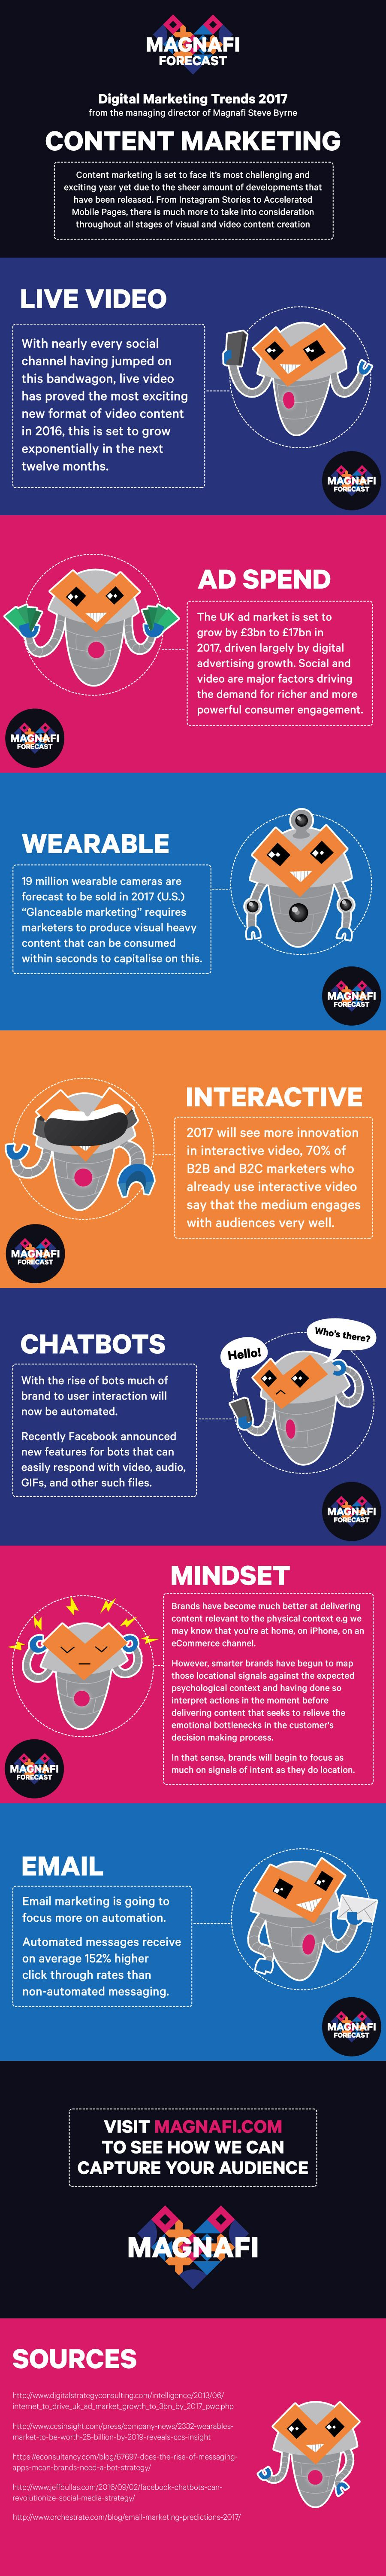 Digital Marketing Trends to Look for in 2017 - infographic